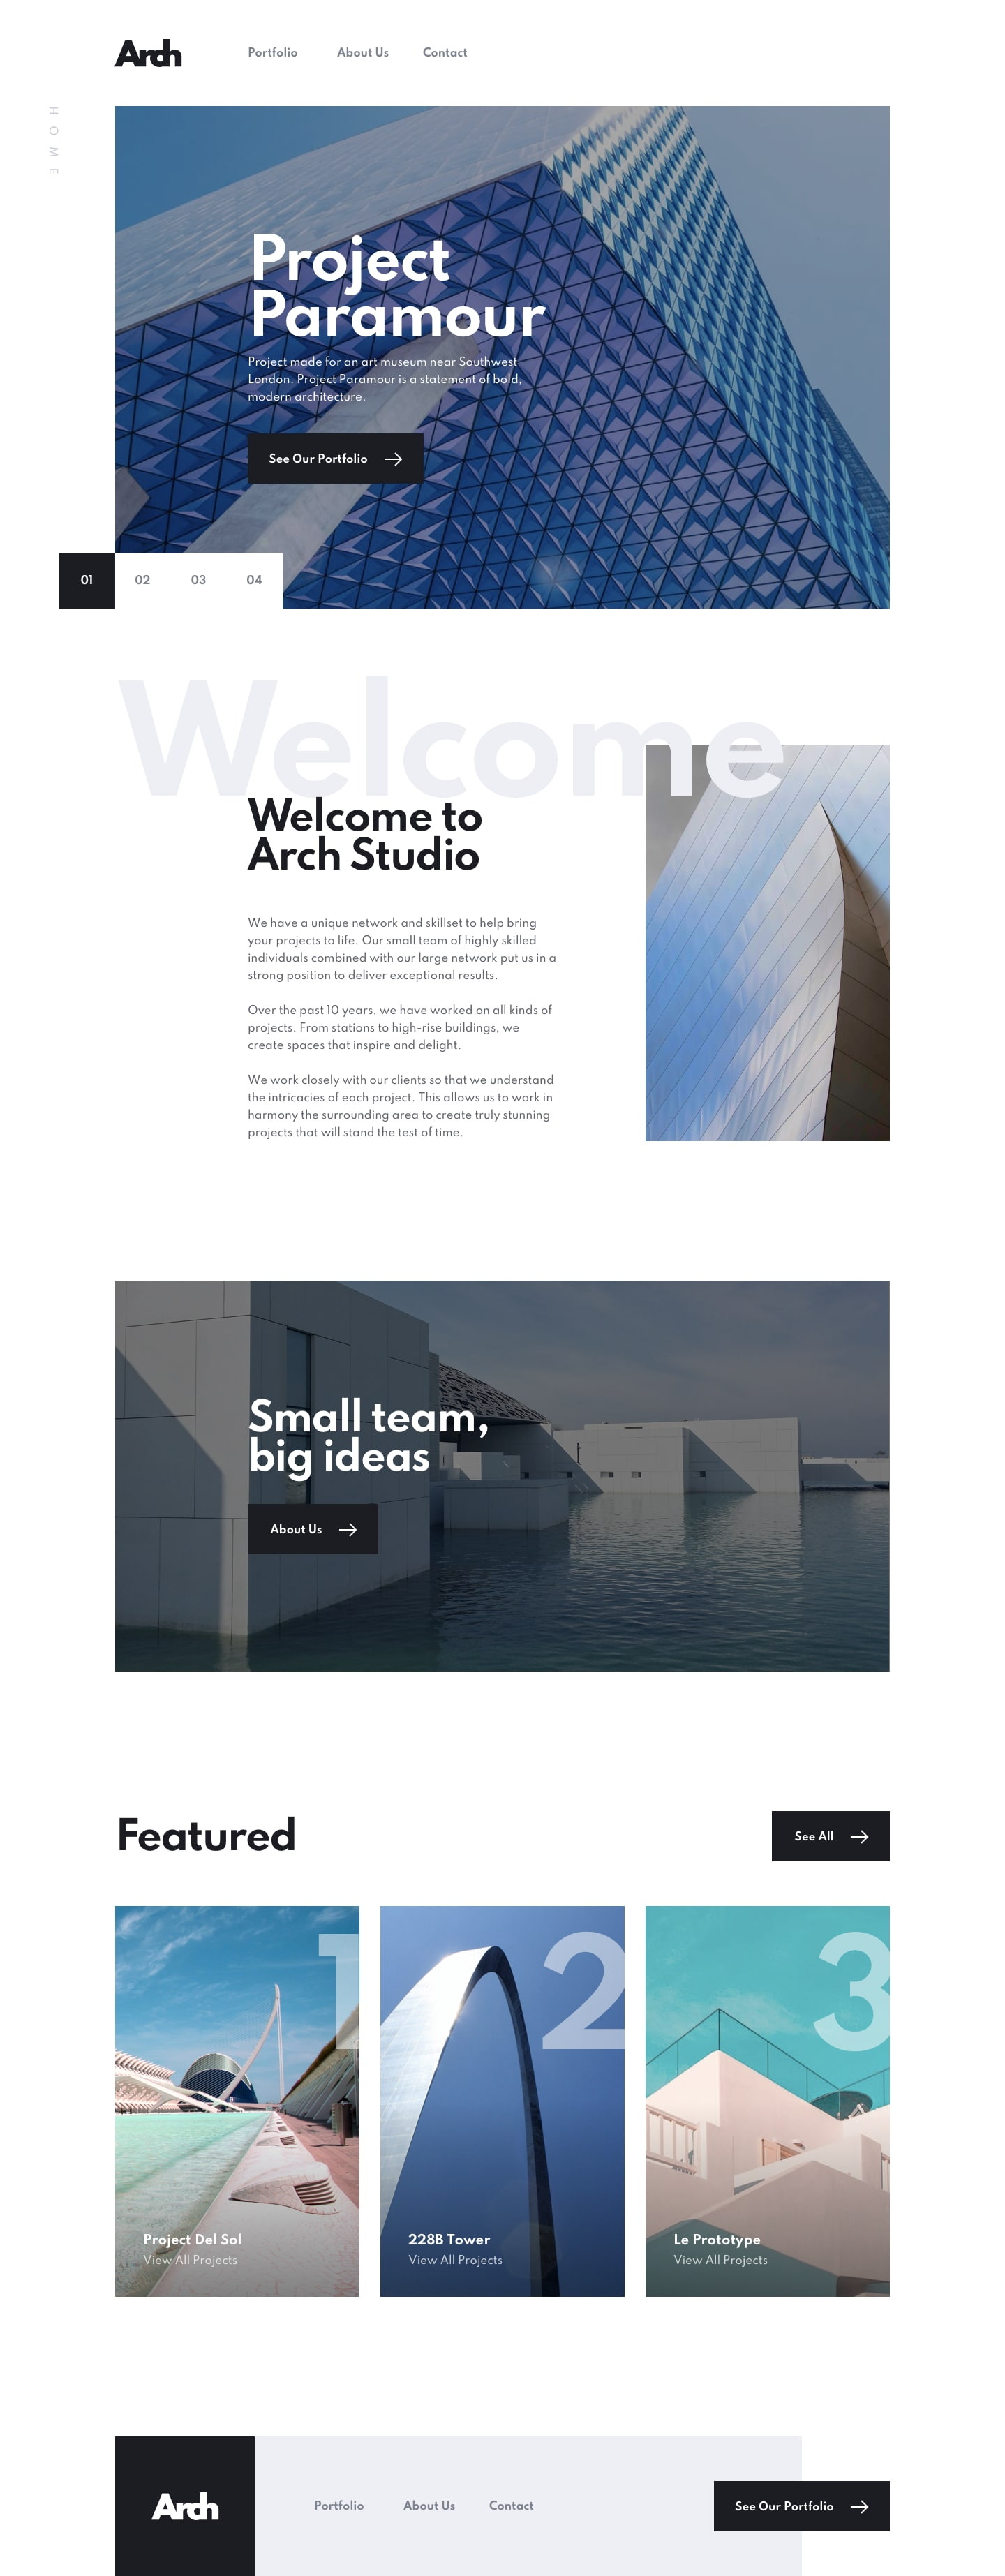 Design preview for Arch Studio multi-page website coding challenge